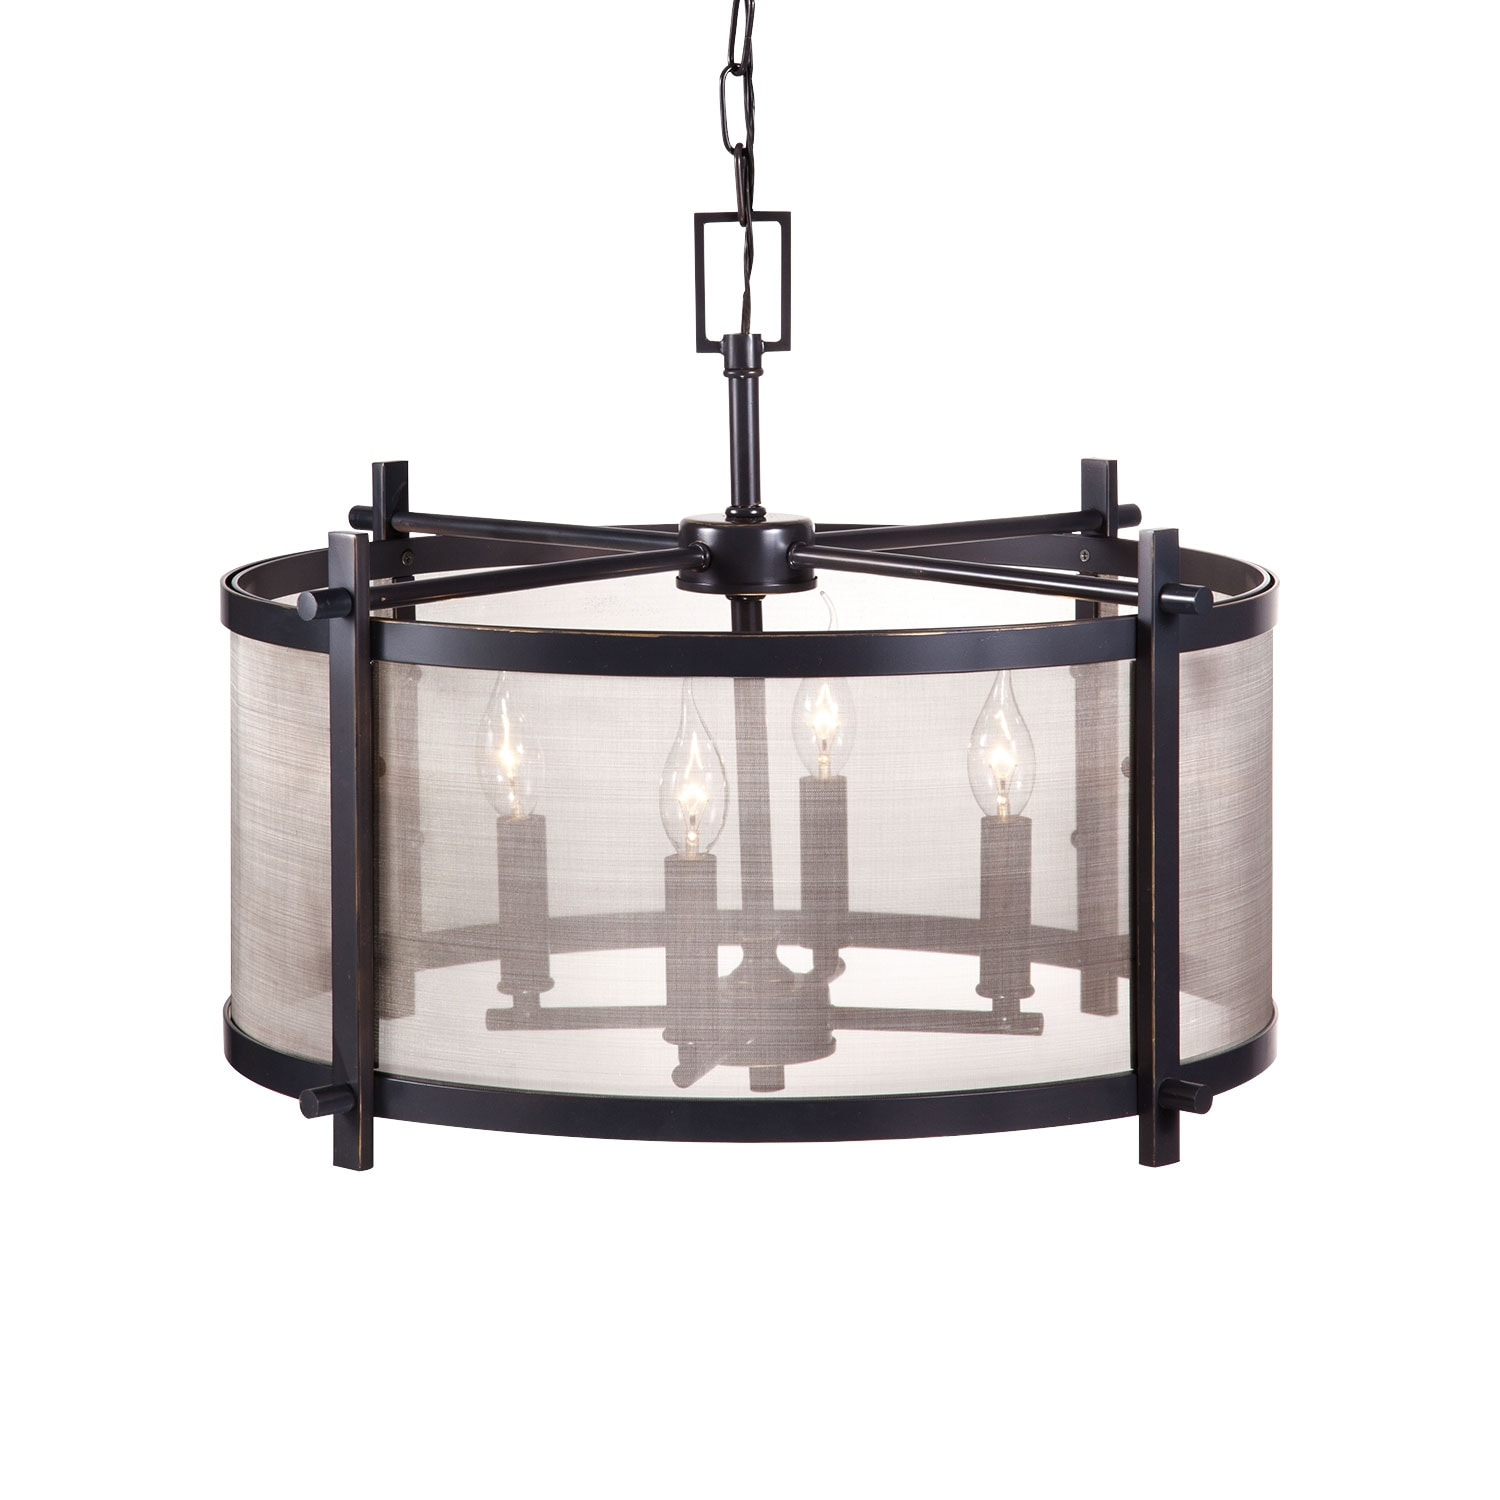 Home Accessories - Gabbro Chandelier